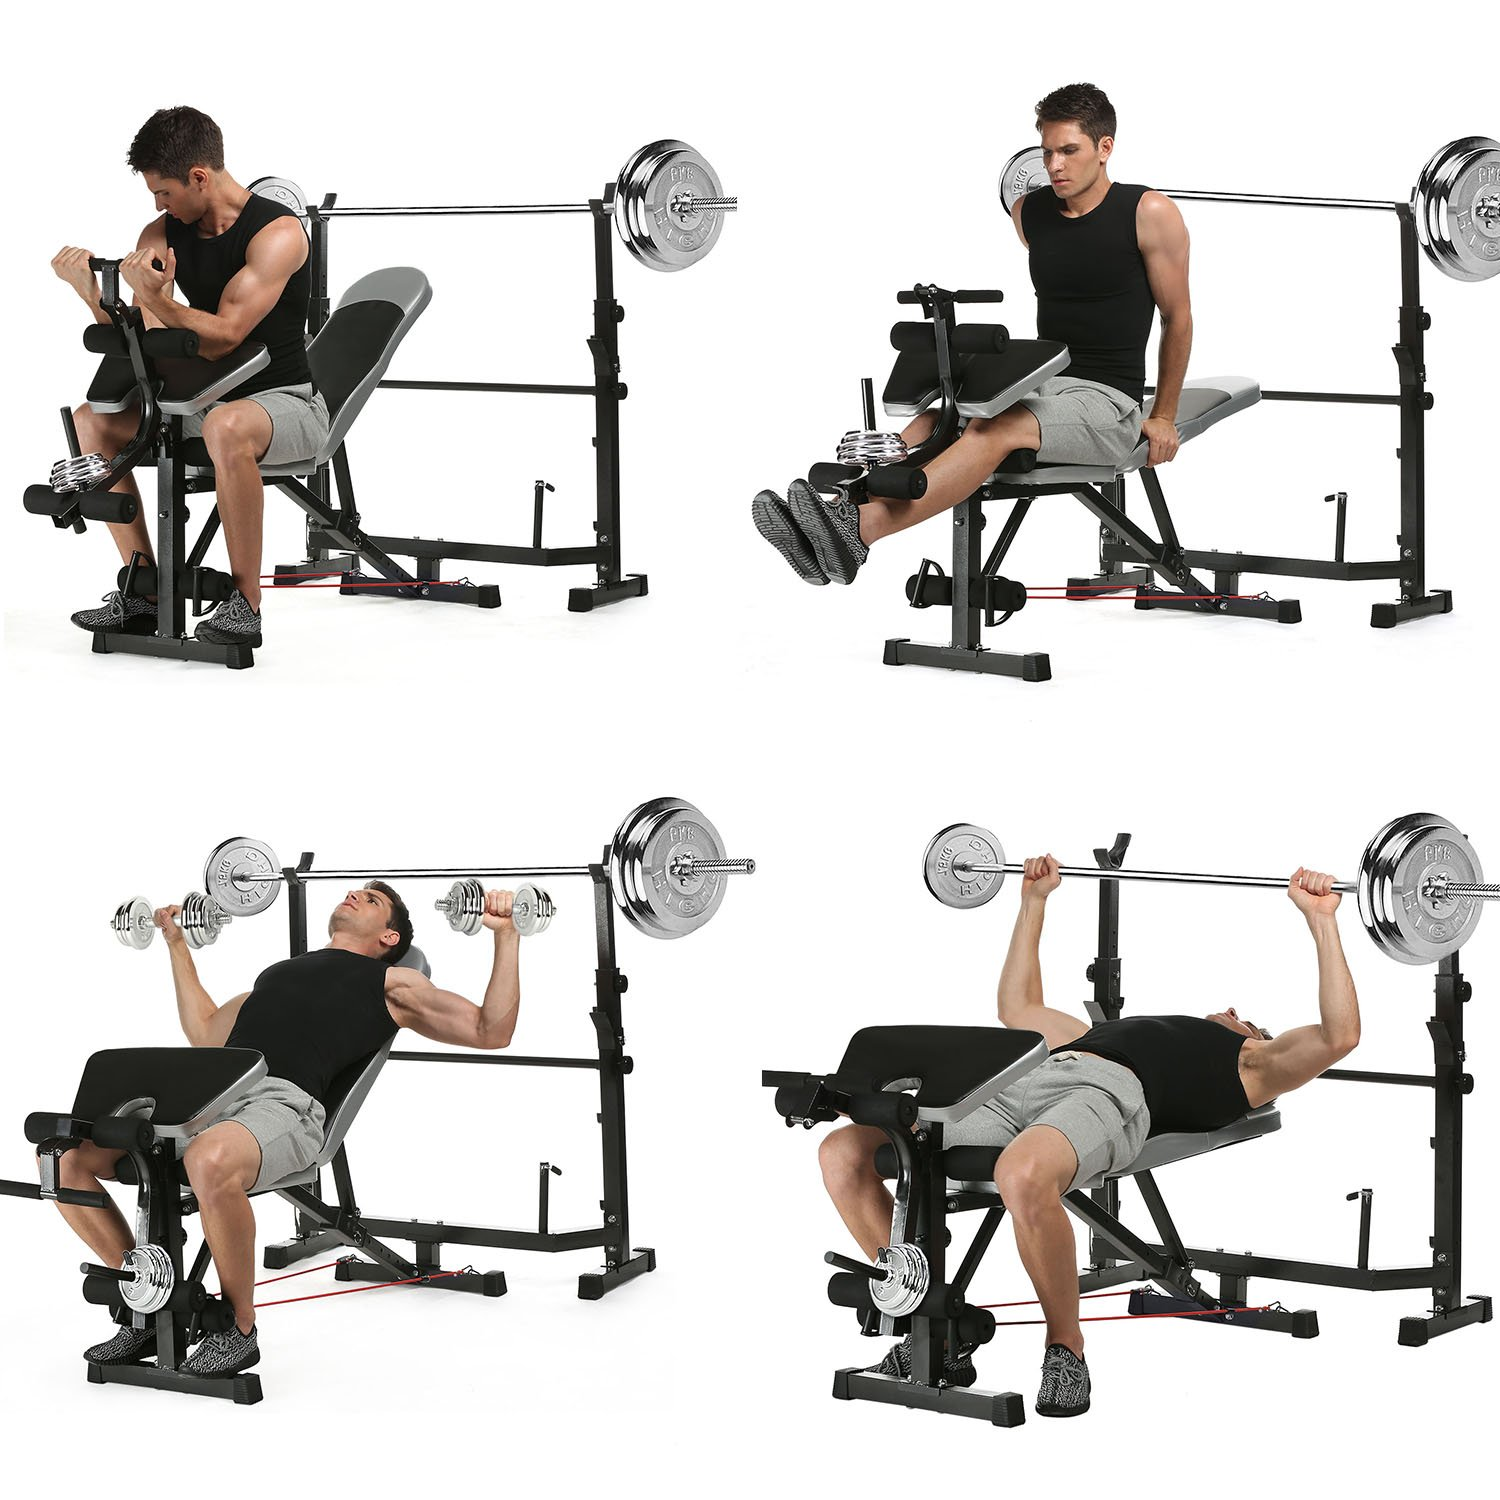 Olympic Weight Bench Mid-Width Bench Arms Height Adjustable Proffesional Fitness(US Stock) by Binxin